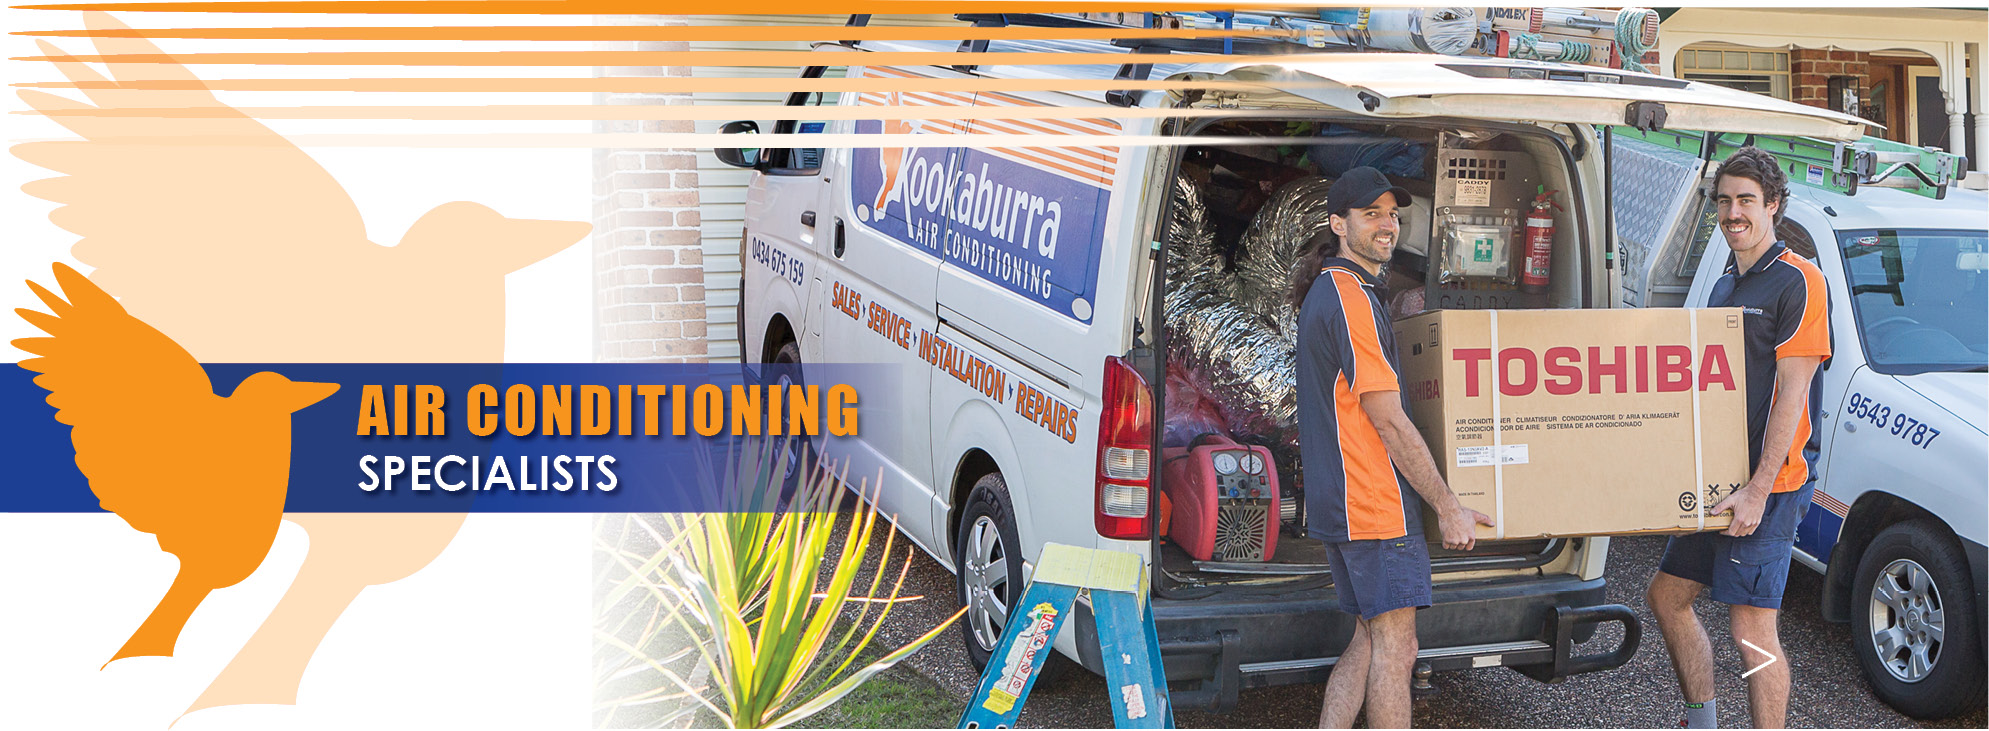 ​Kookaburra Air Conditioning Specialists Sales Service Installation Repairs